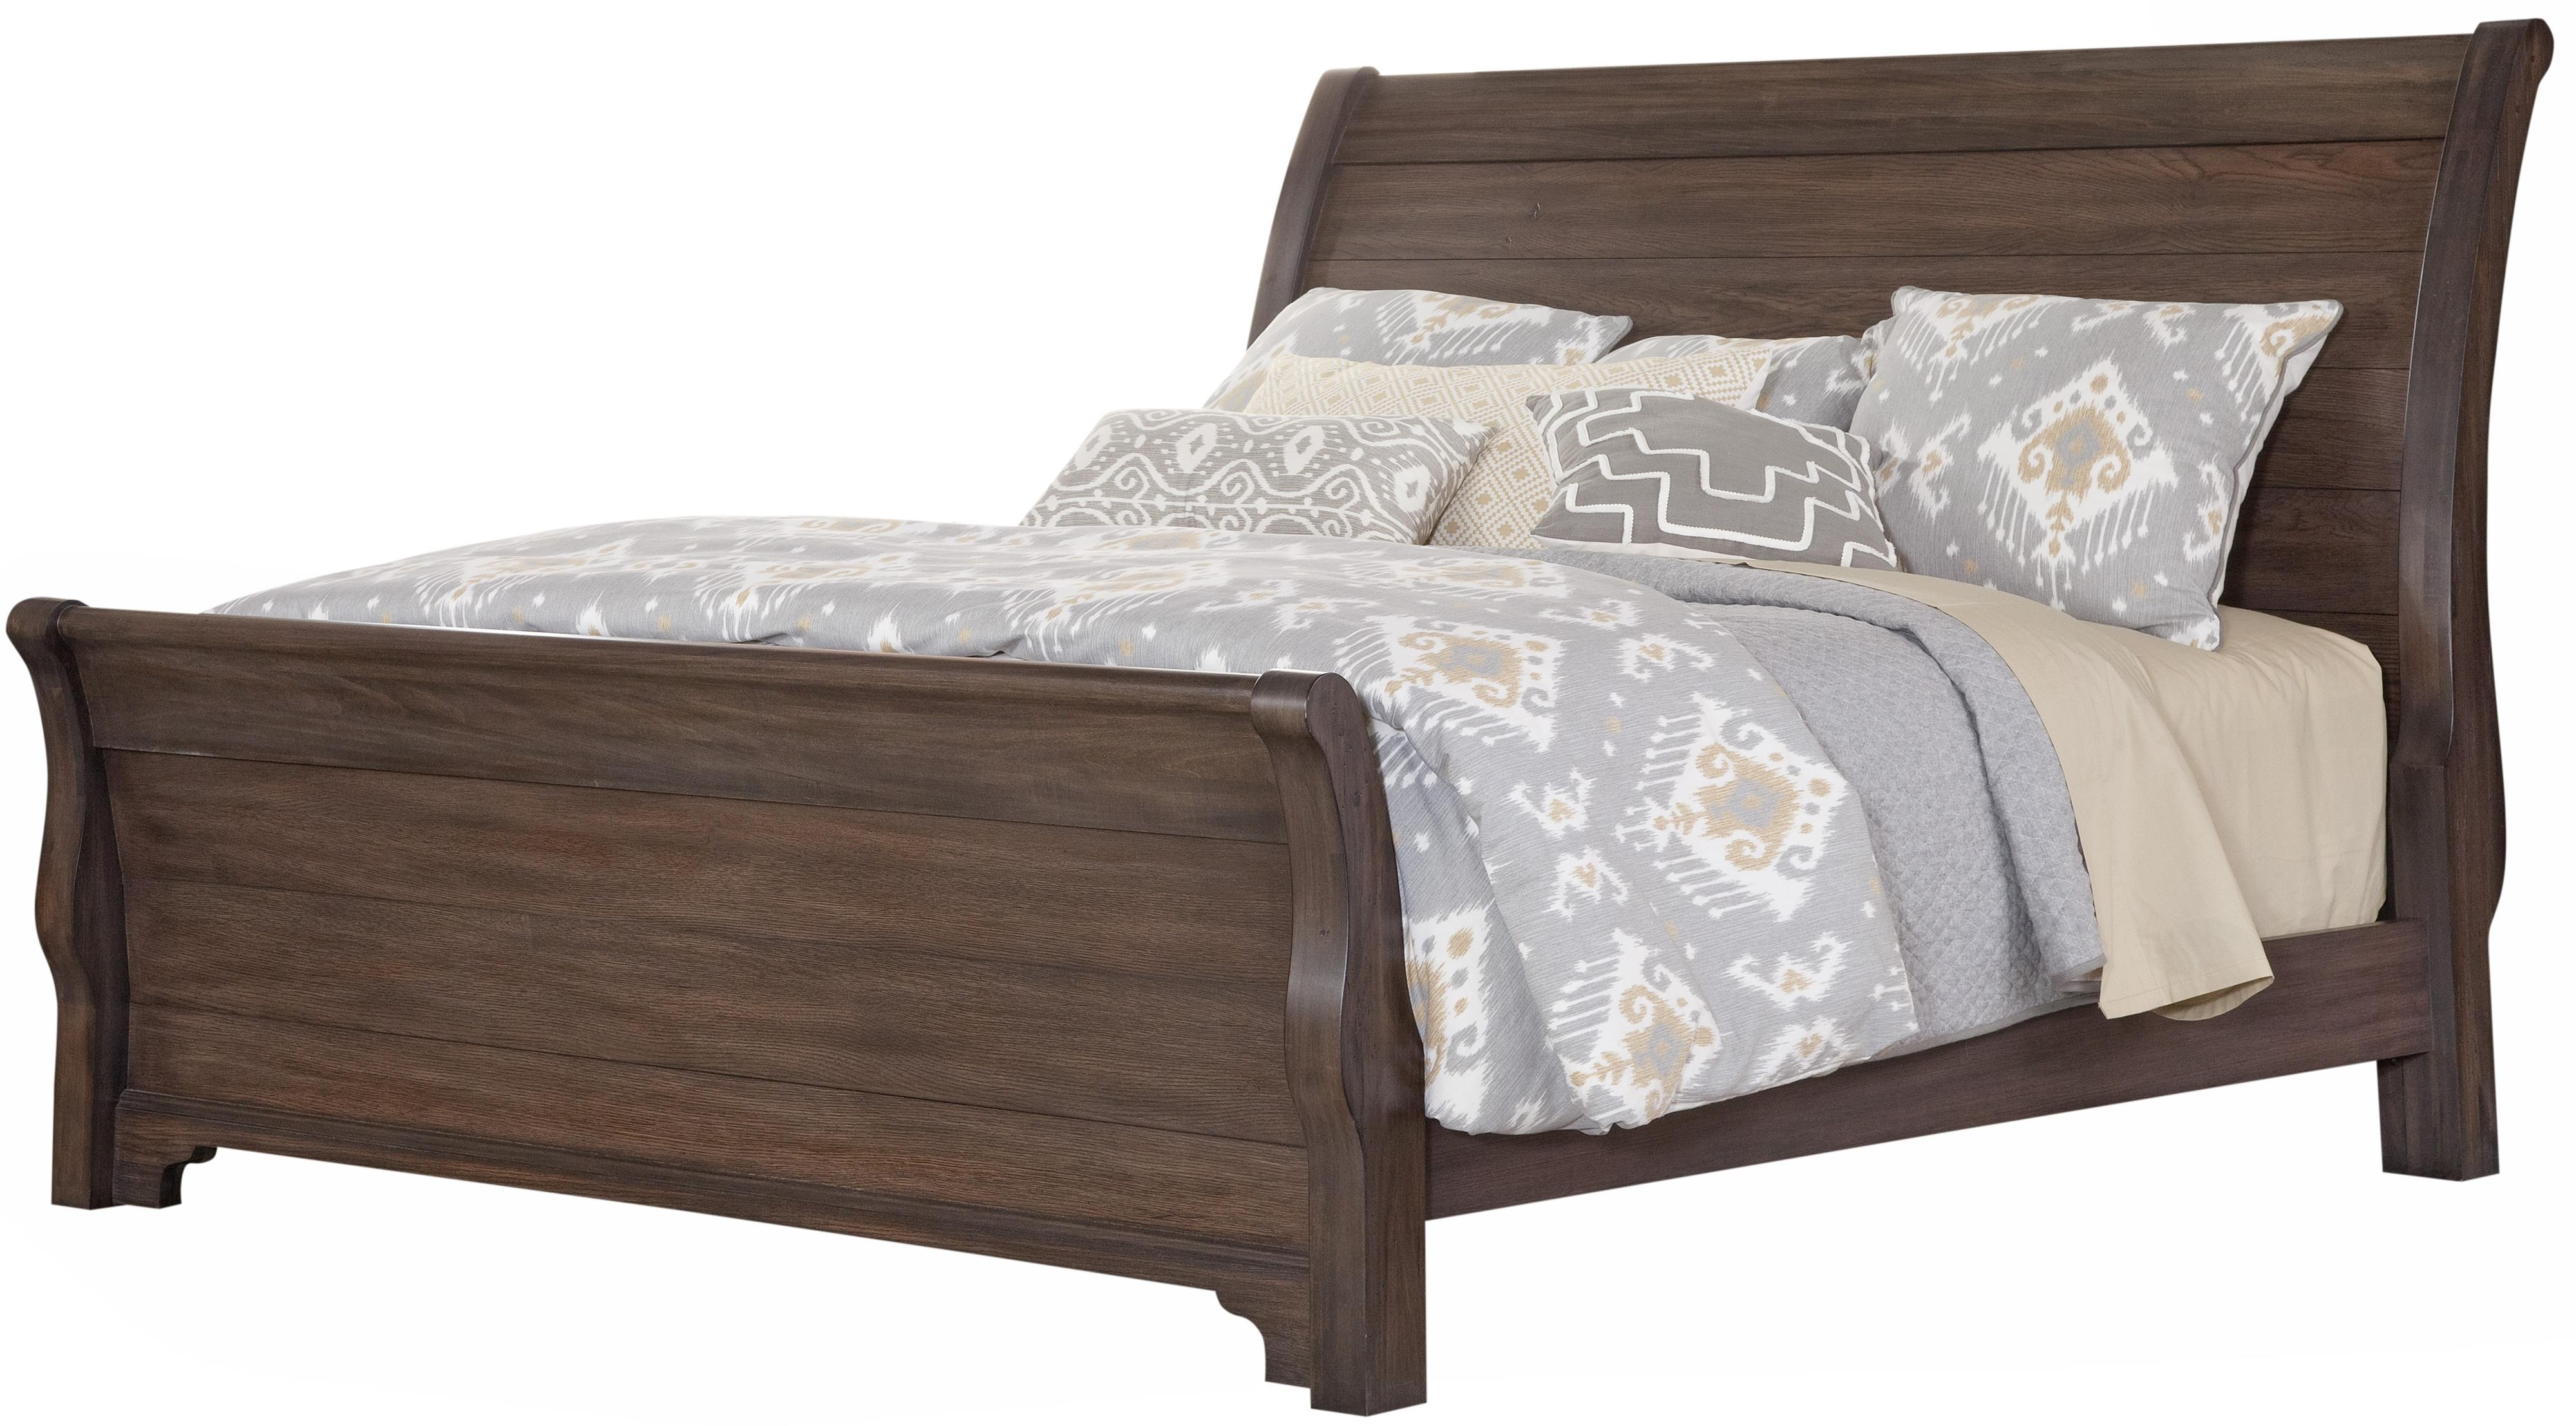 Vaughan Bassett Whiskey Barrel King Sleigh Bed - Item Number: 816-663+366+722+MS2